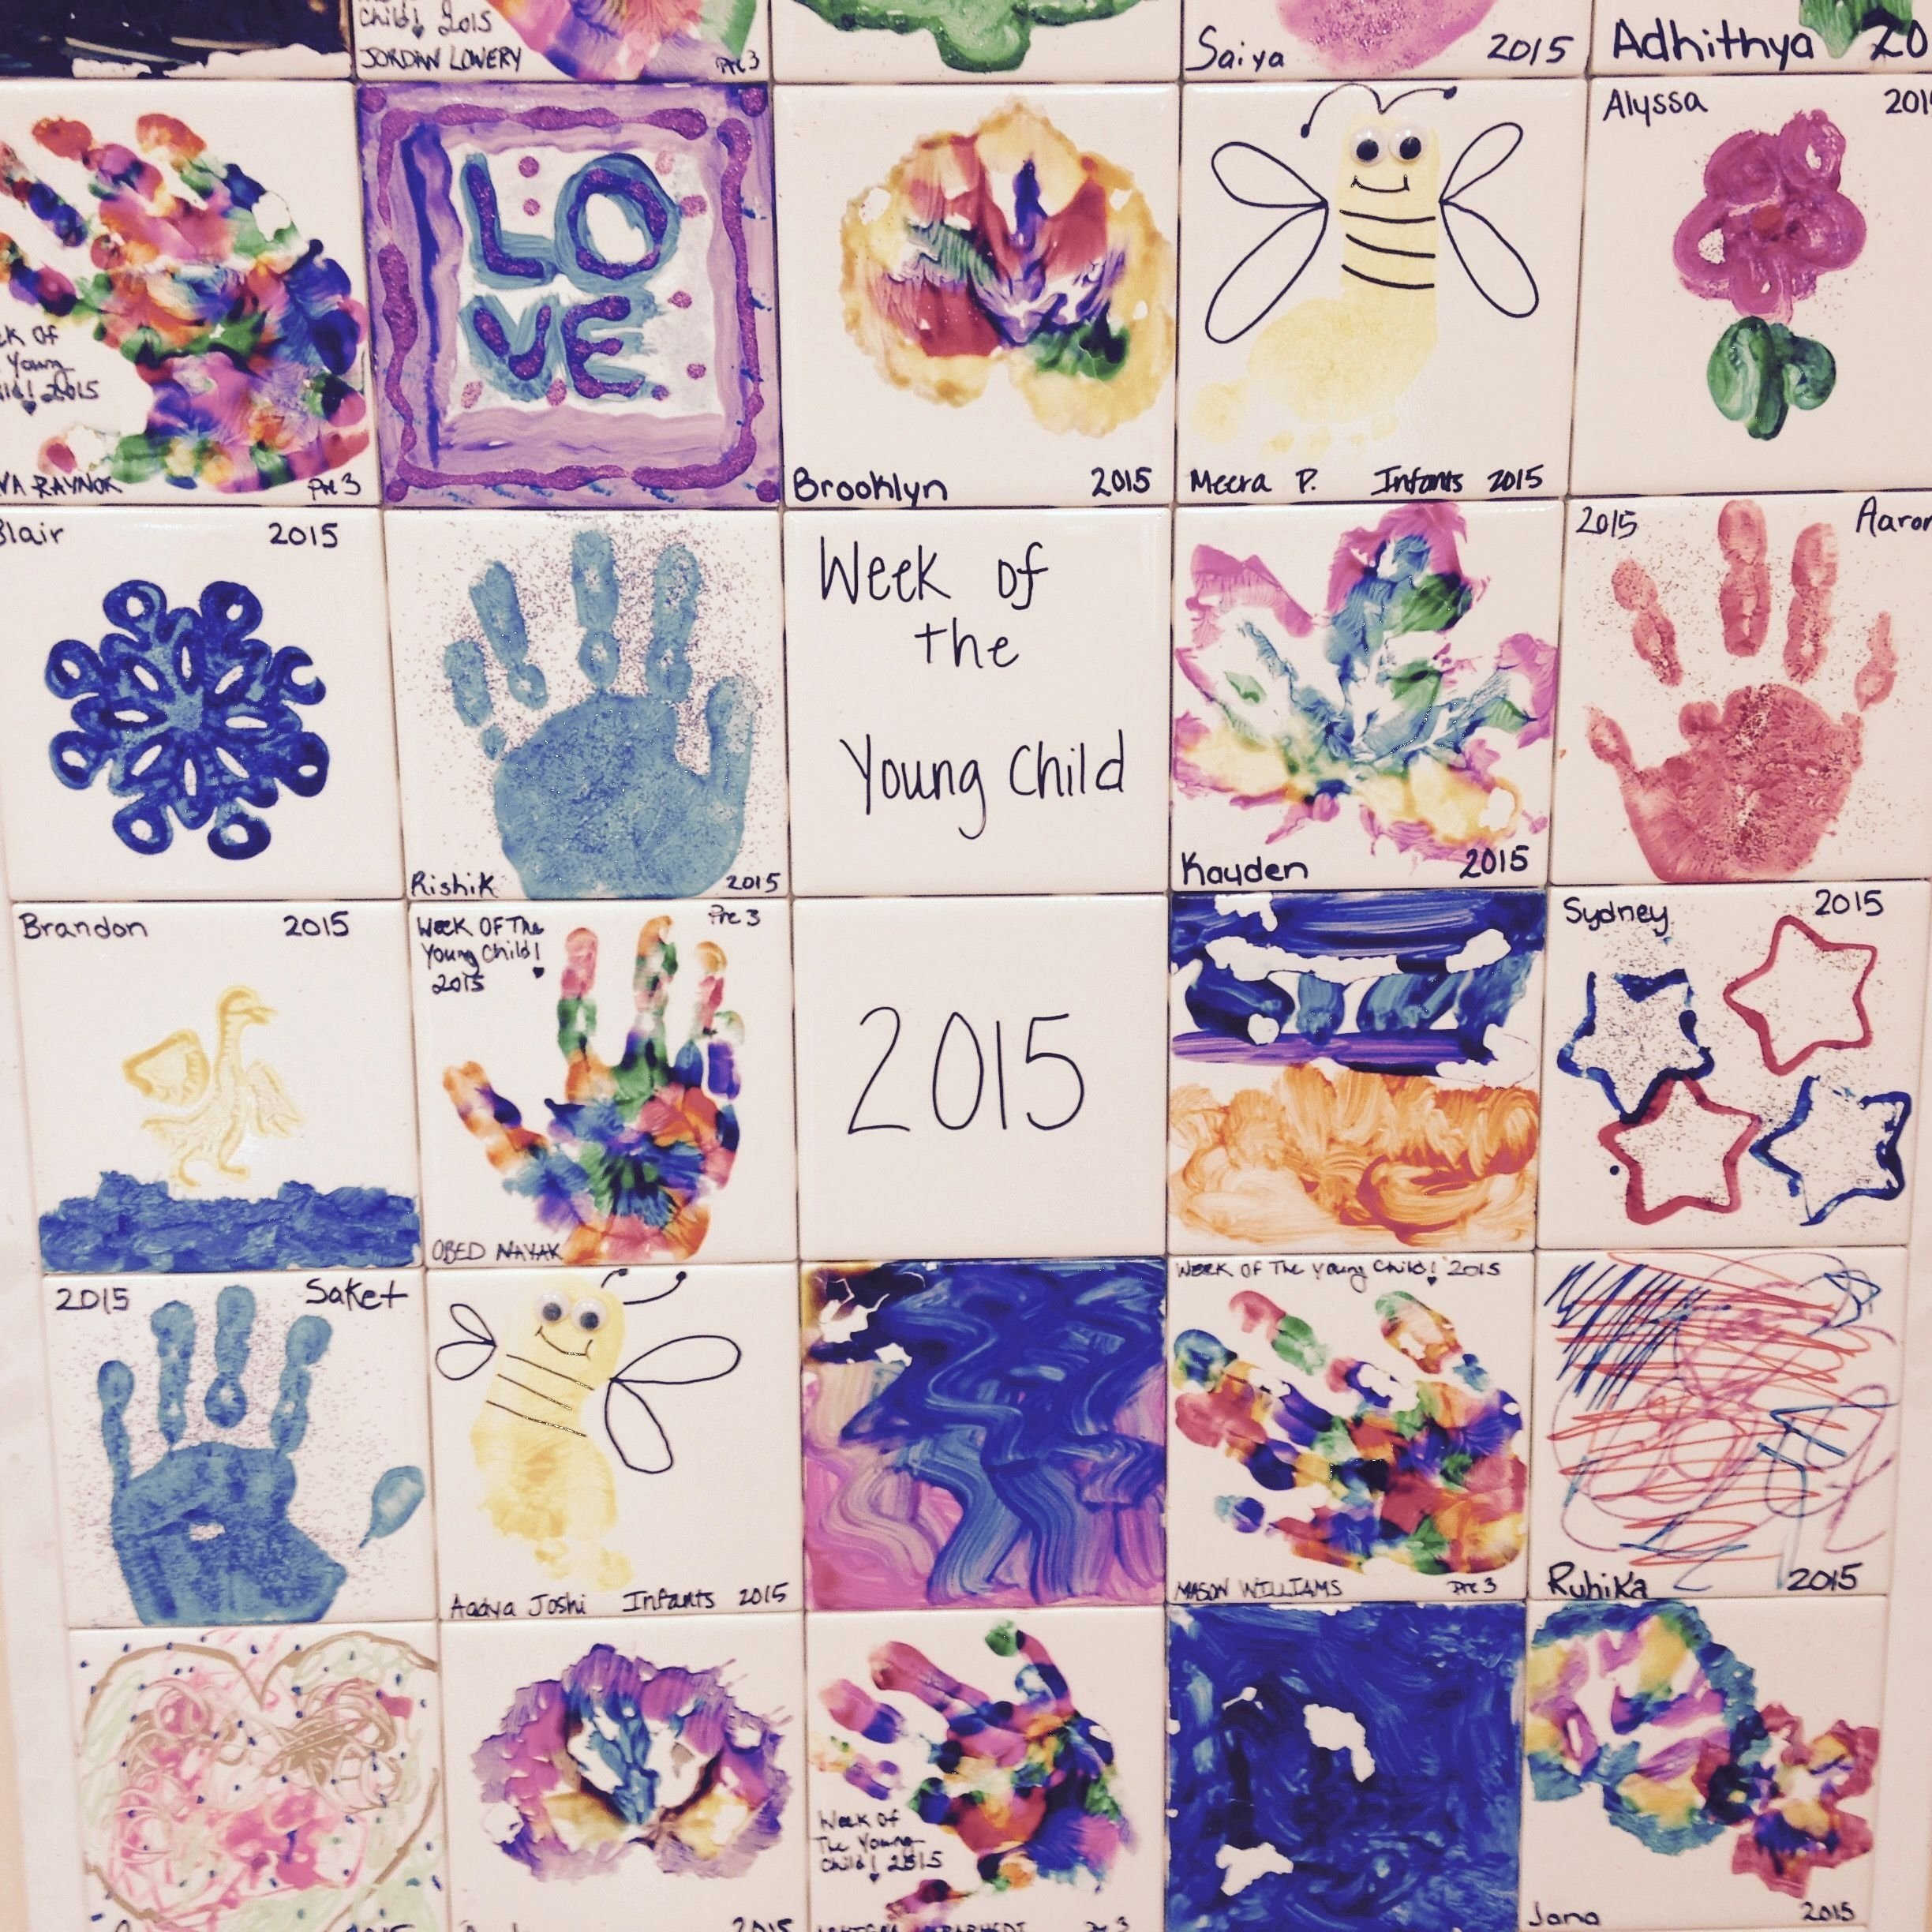 10 Lovely Week Of The Young Child Ideas ceramic tile art display for wotyc gateway mallard nc week of